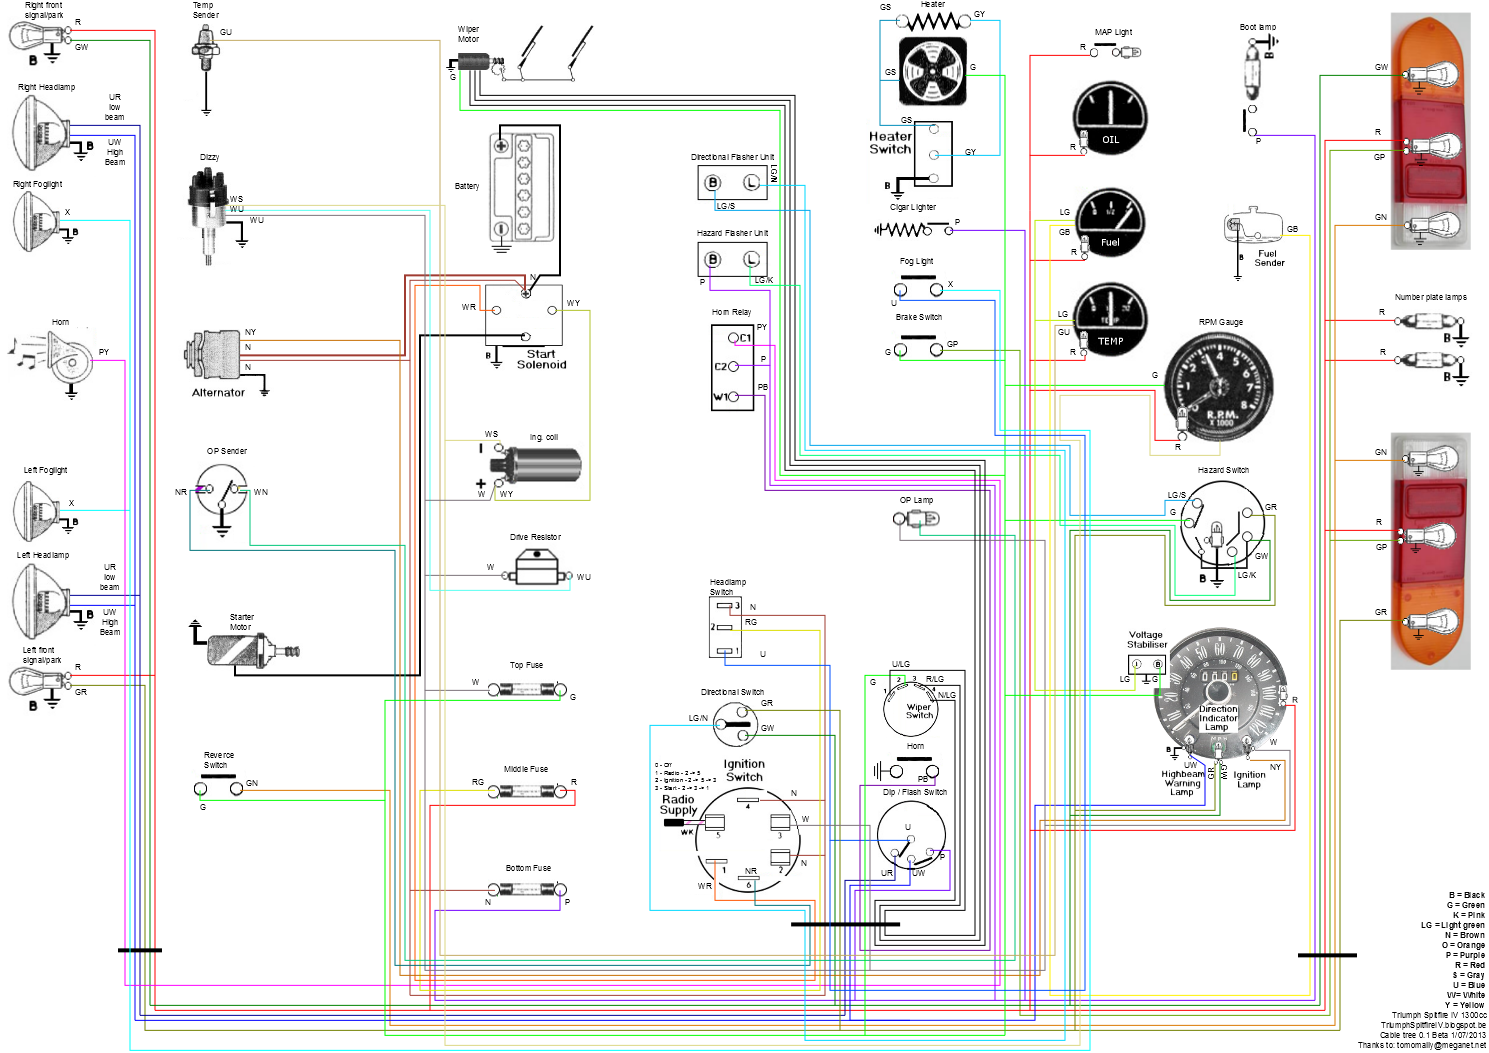 spitfire iv wiring diagram spitfire mkiv wiring diagram how to library the triumph experience austin healey 3000 wiring diagram at alyssarenee.co